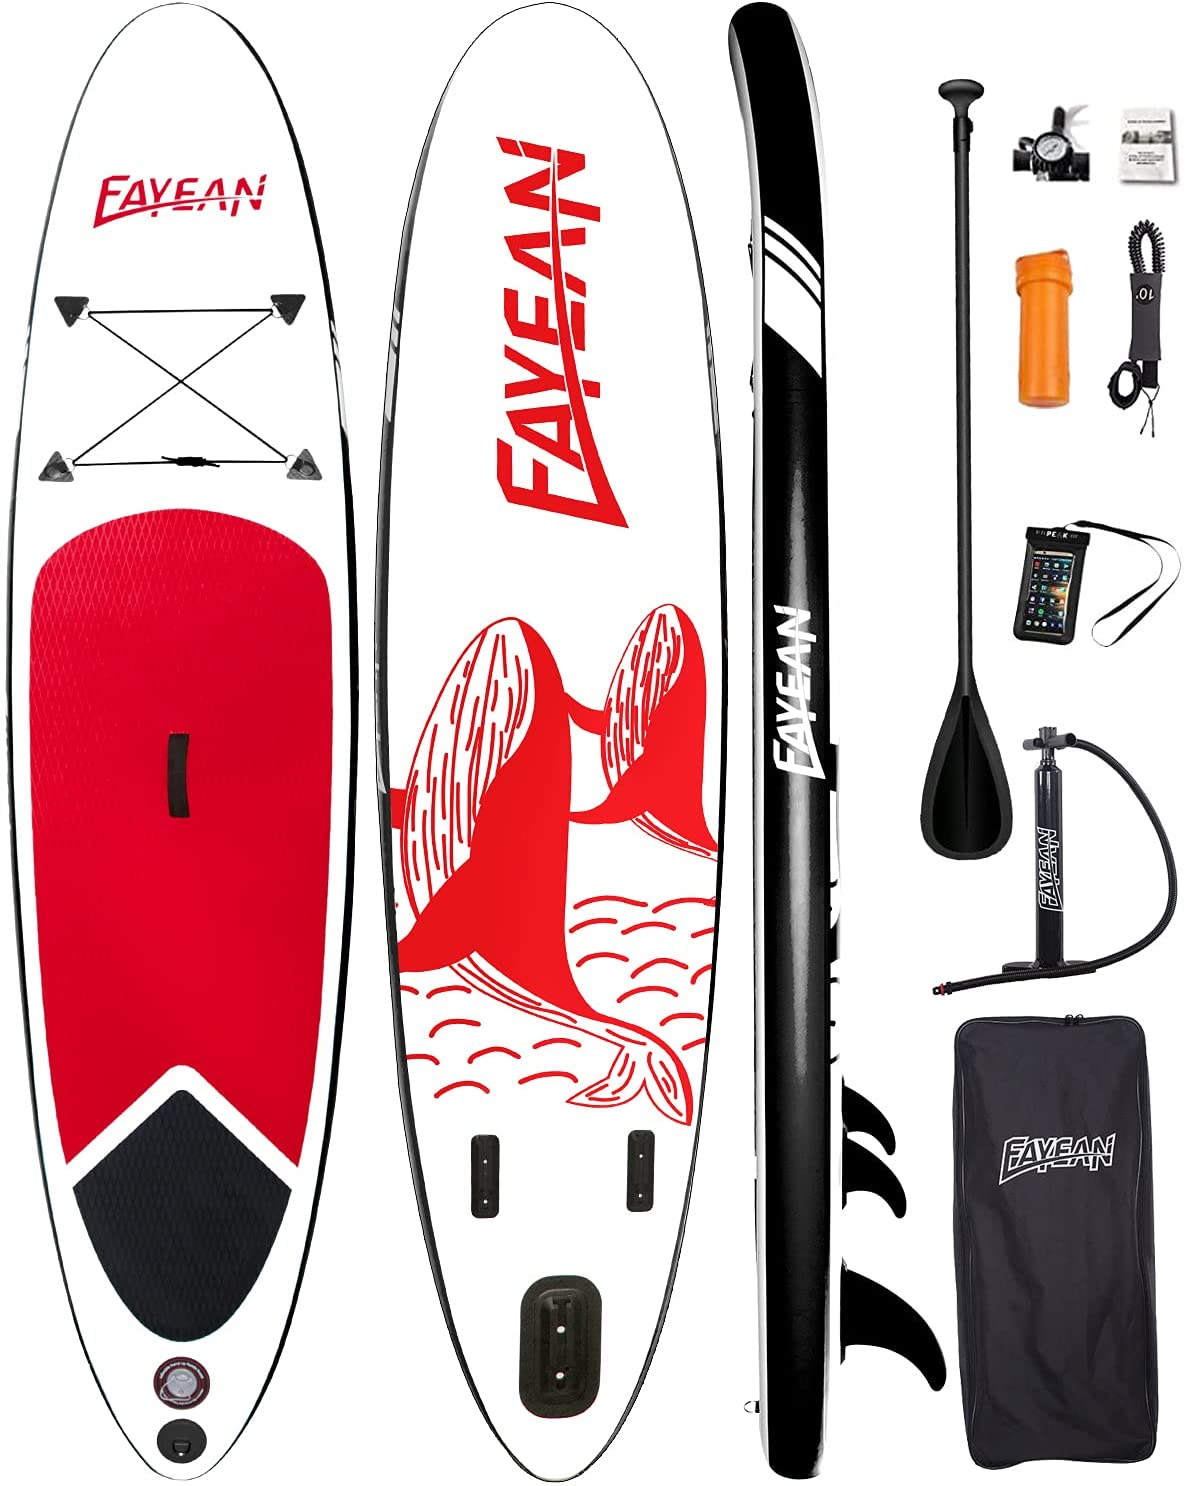 dotshio_whale_red_paddle_sizes_sup_surf_board_inflatable_cheap_with_all_accessories_construction